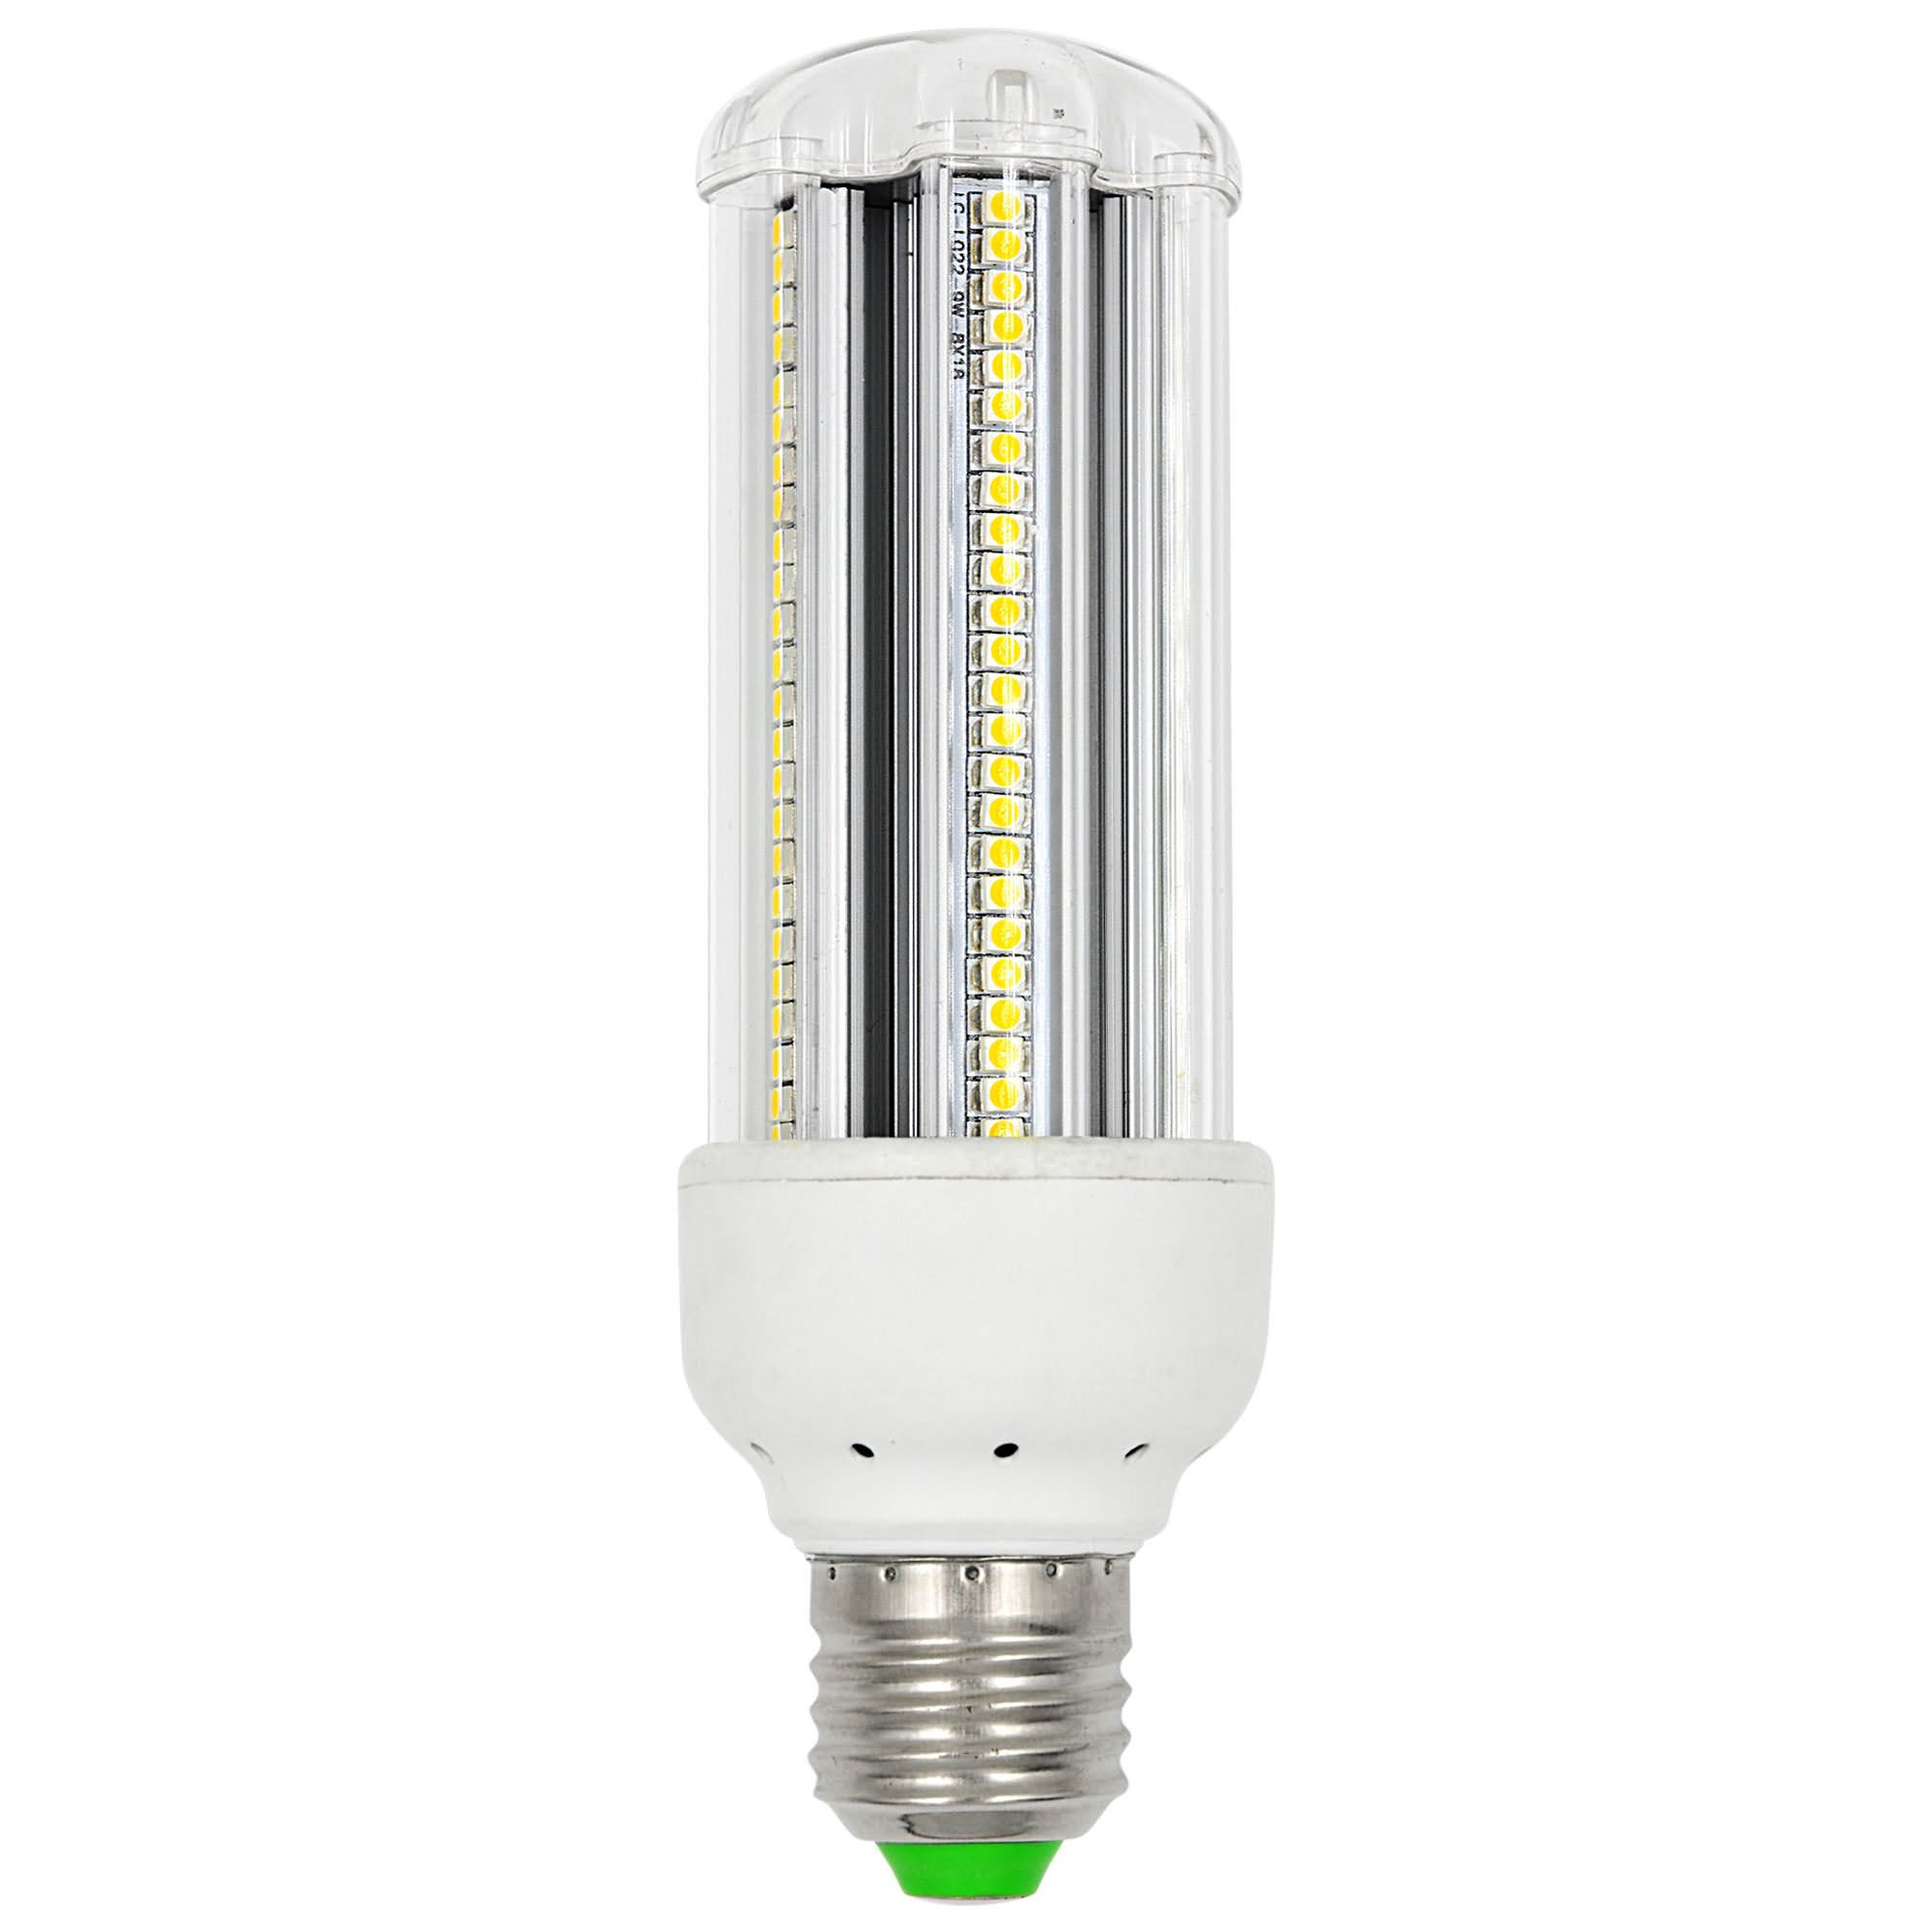 MENGS® E27 9W LED Corn Light 144x 3528 SMD LEDs LED Bulb In Warm White Energy-Saving Lamp